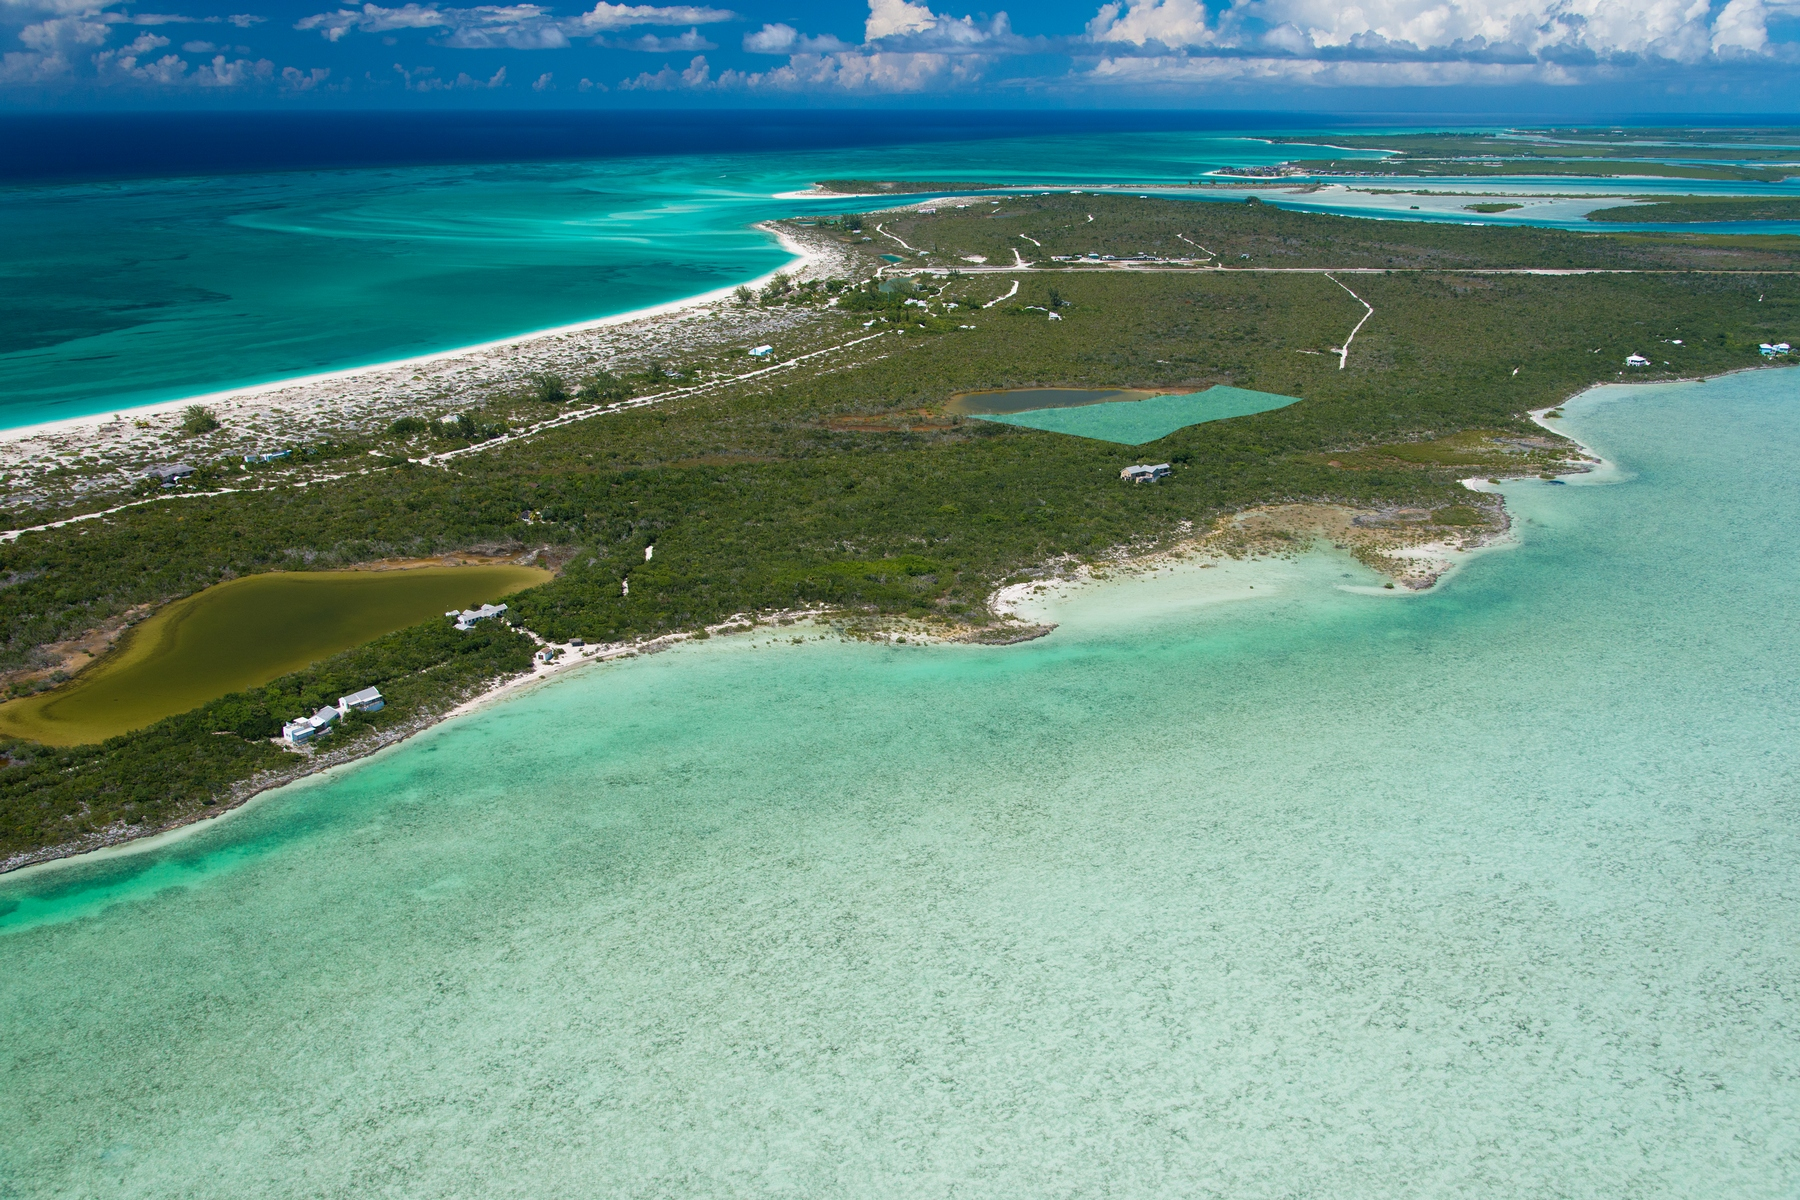 Land for Sale at Pine Cay Land Gardenview Pine Cay, Pine Cay TCI Turks And Caicos Islands